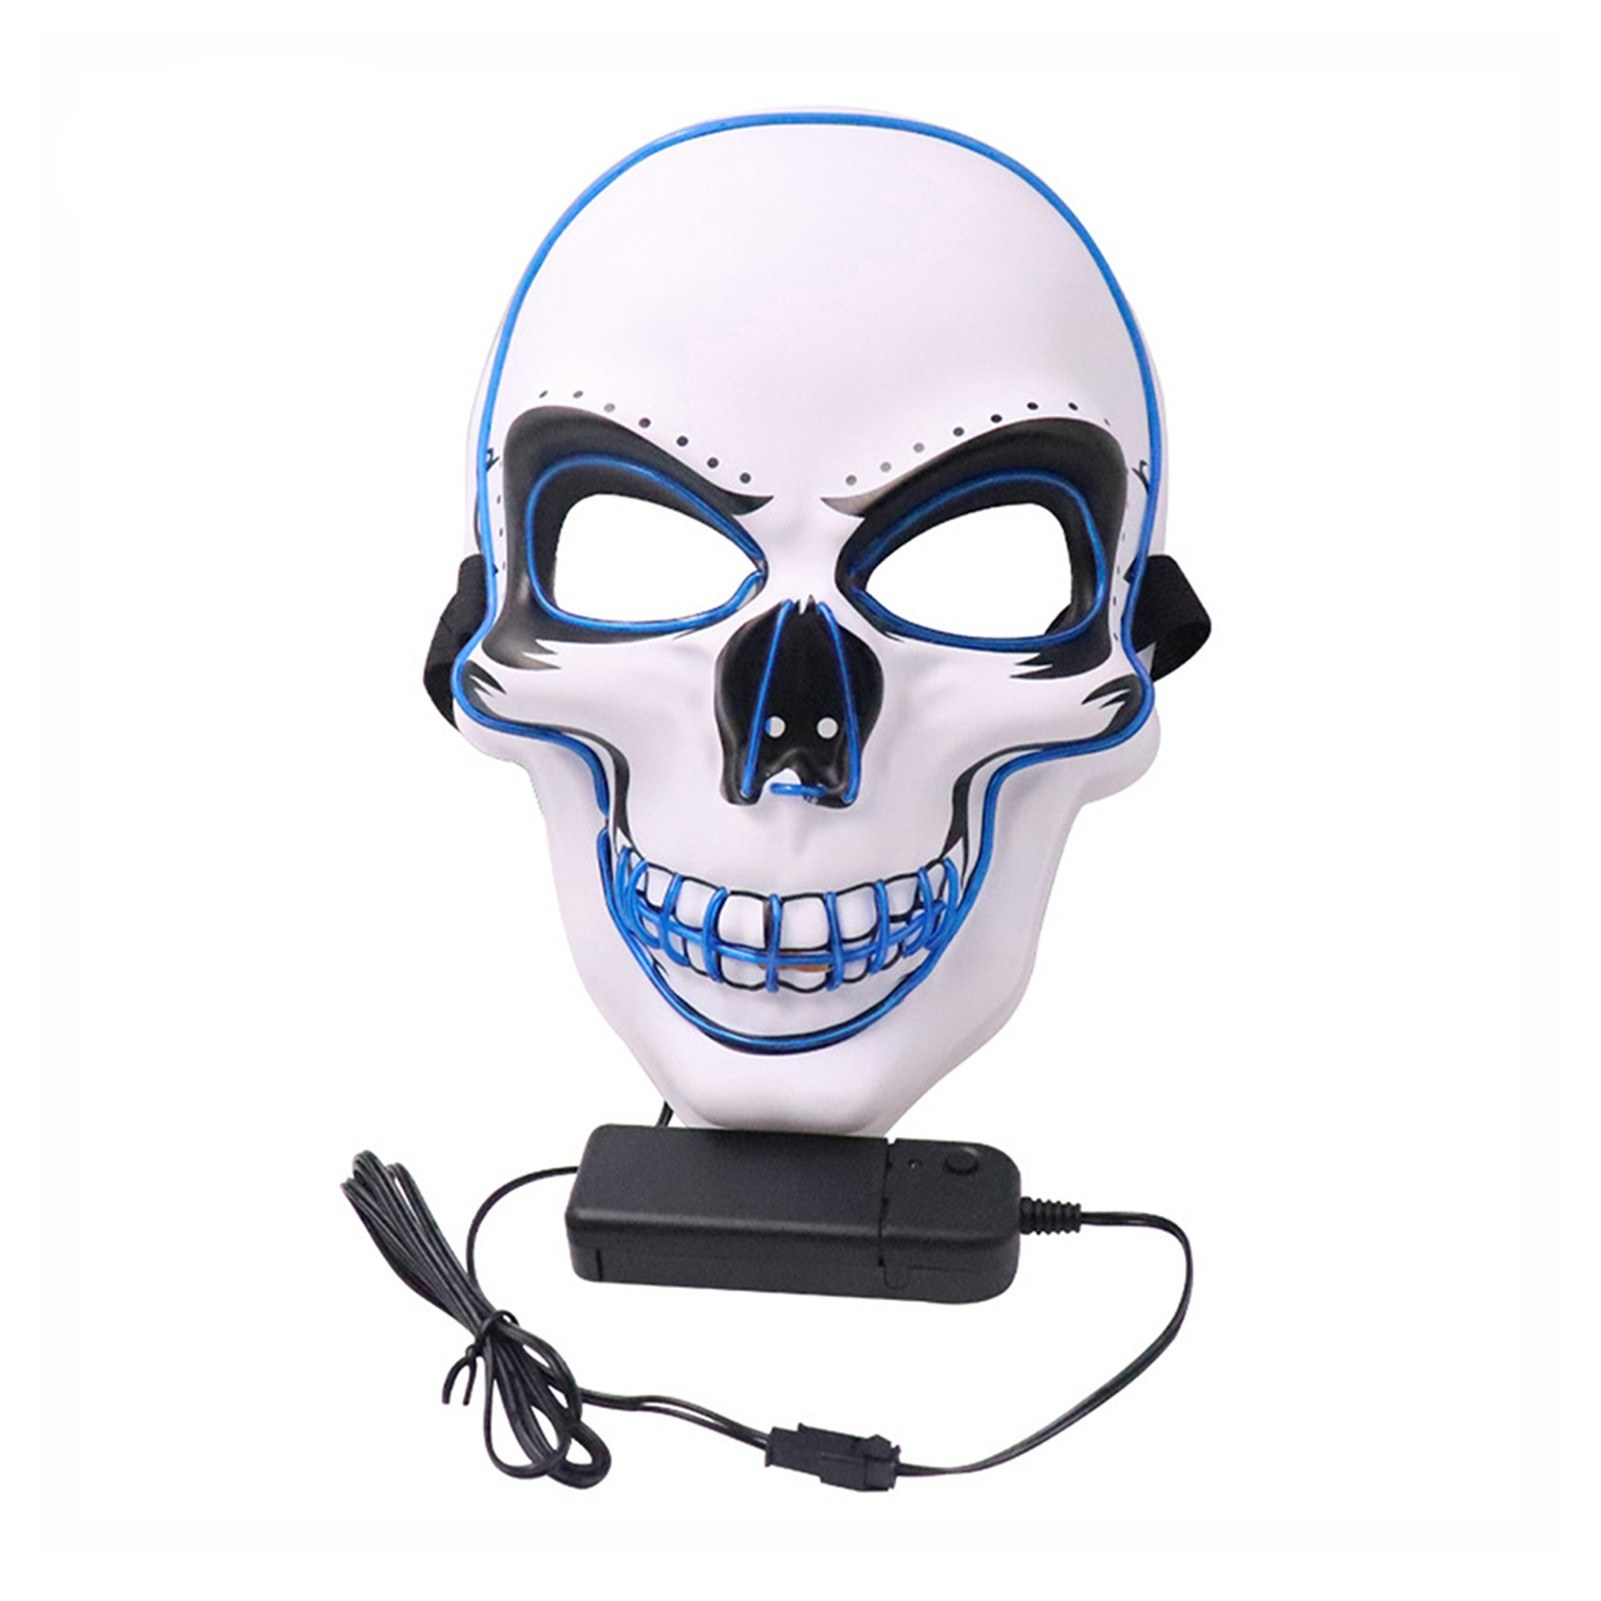 Cafago - 54% OFF Halloween Mask EL Wired Light Up Mask Cosplay Scary Mask for Halloween Festival Party,free shipping+$13.14